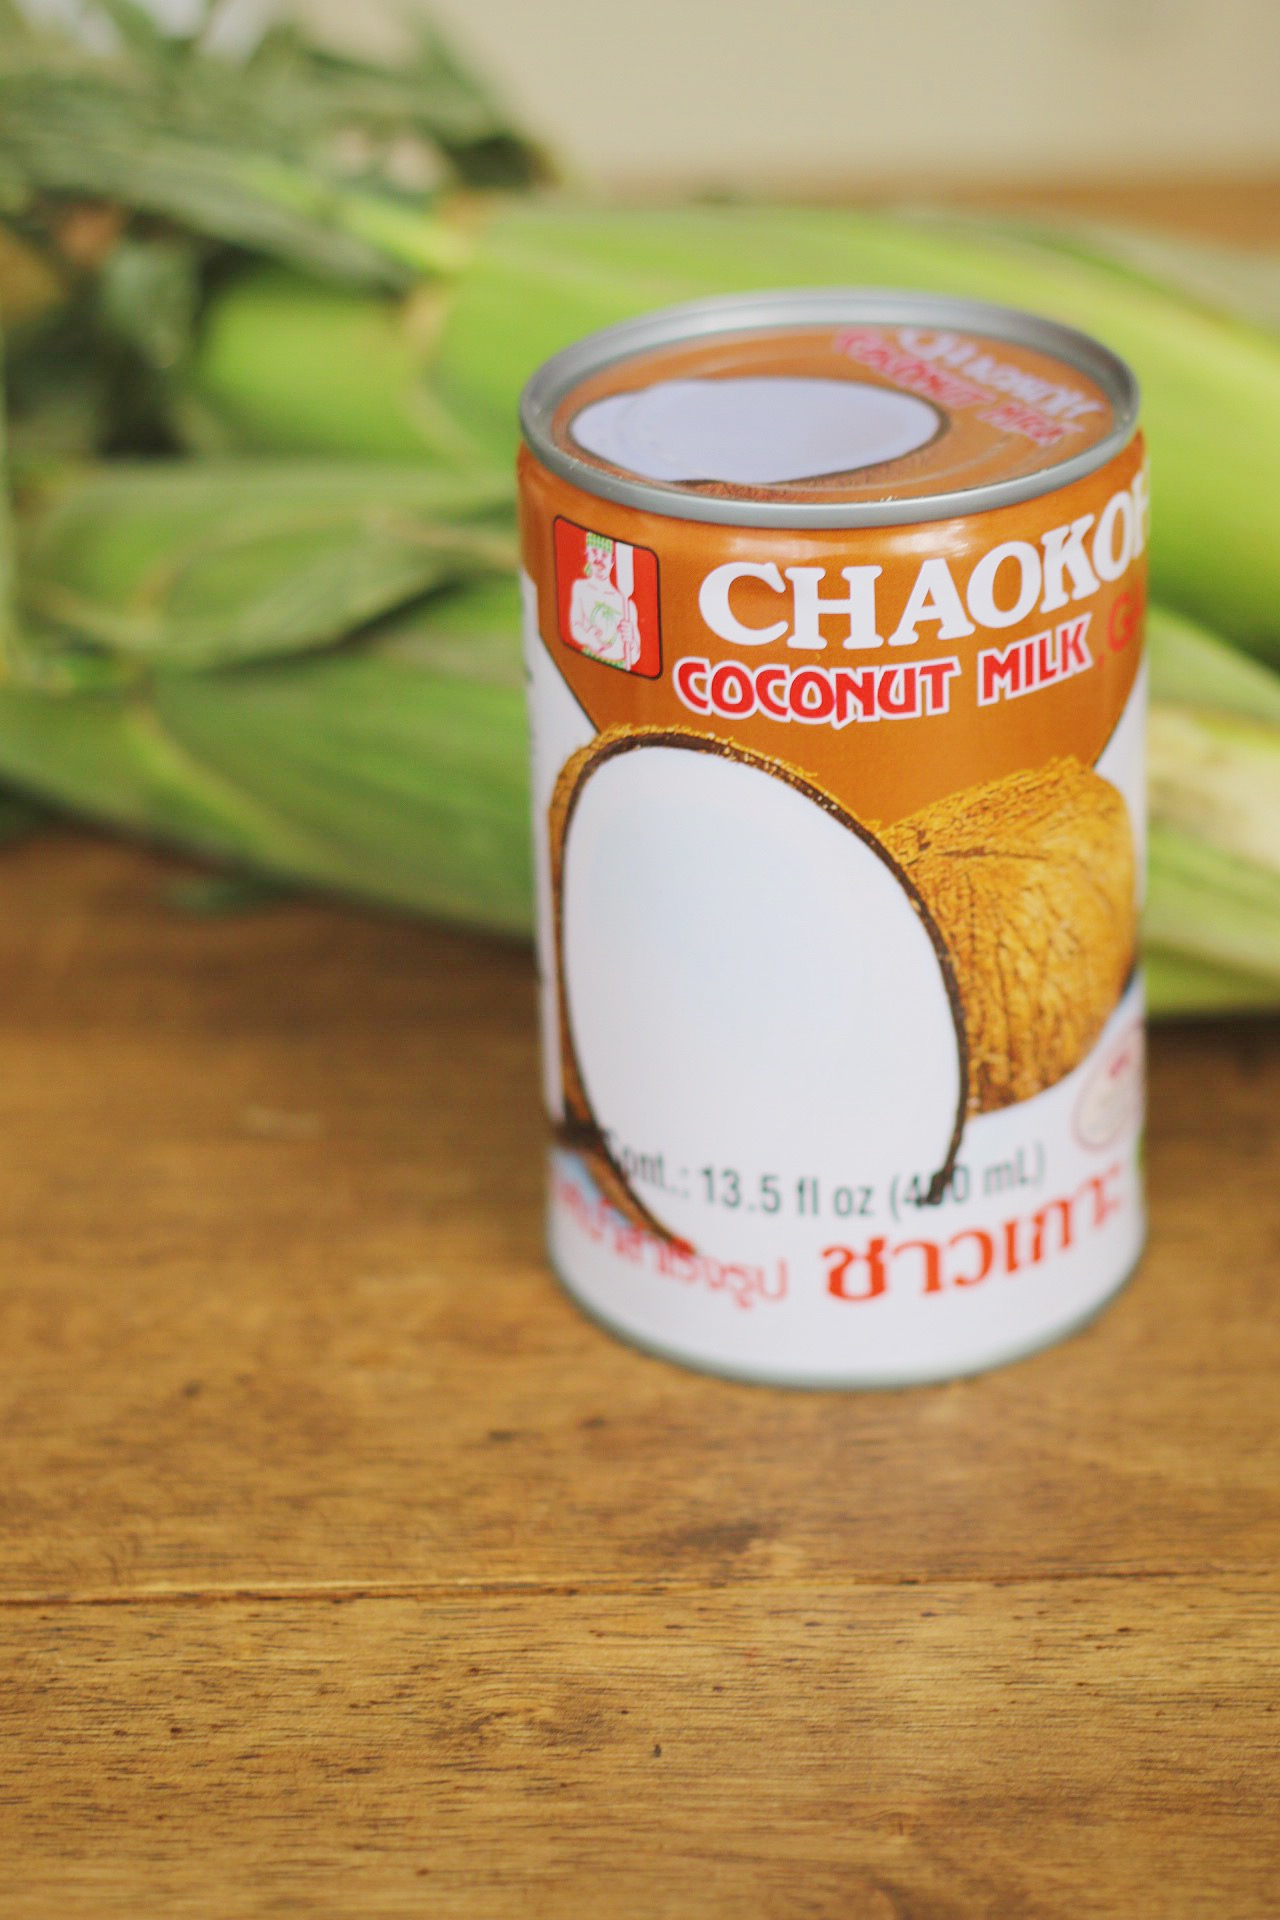 You need 1 can of coconut milk. My mother always claim this brand is the best out there.